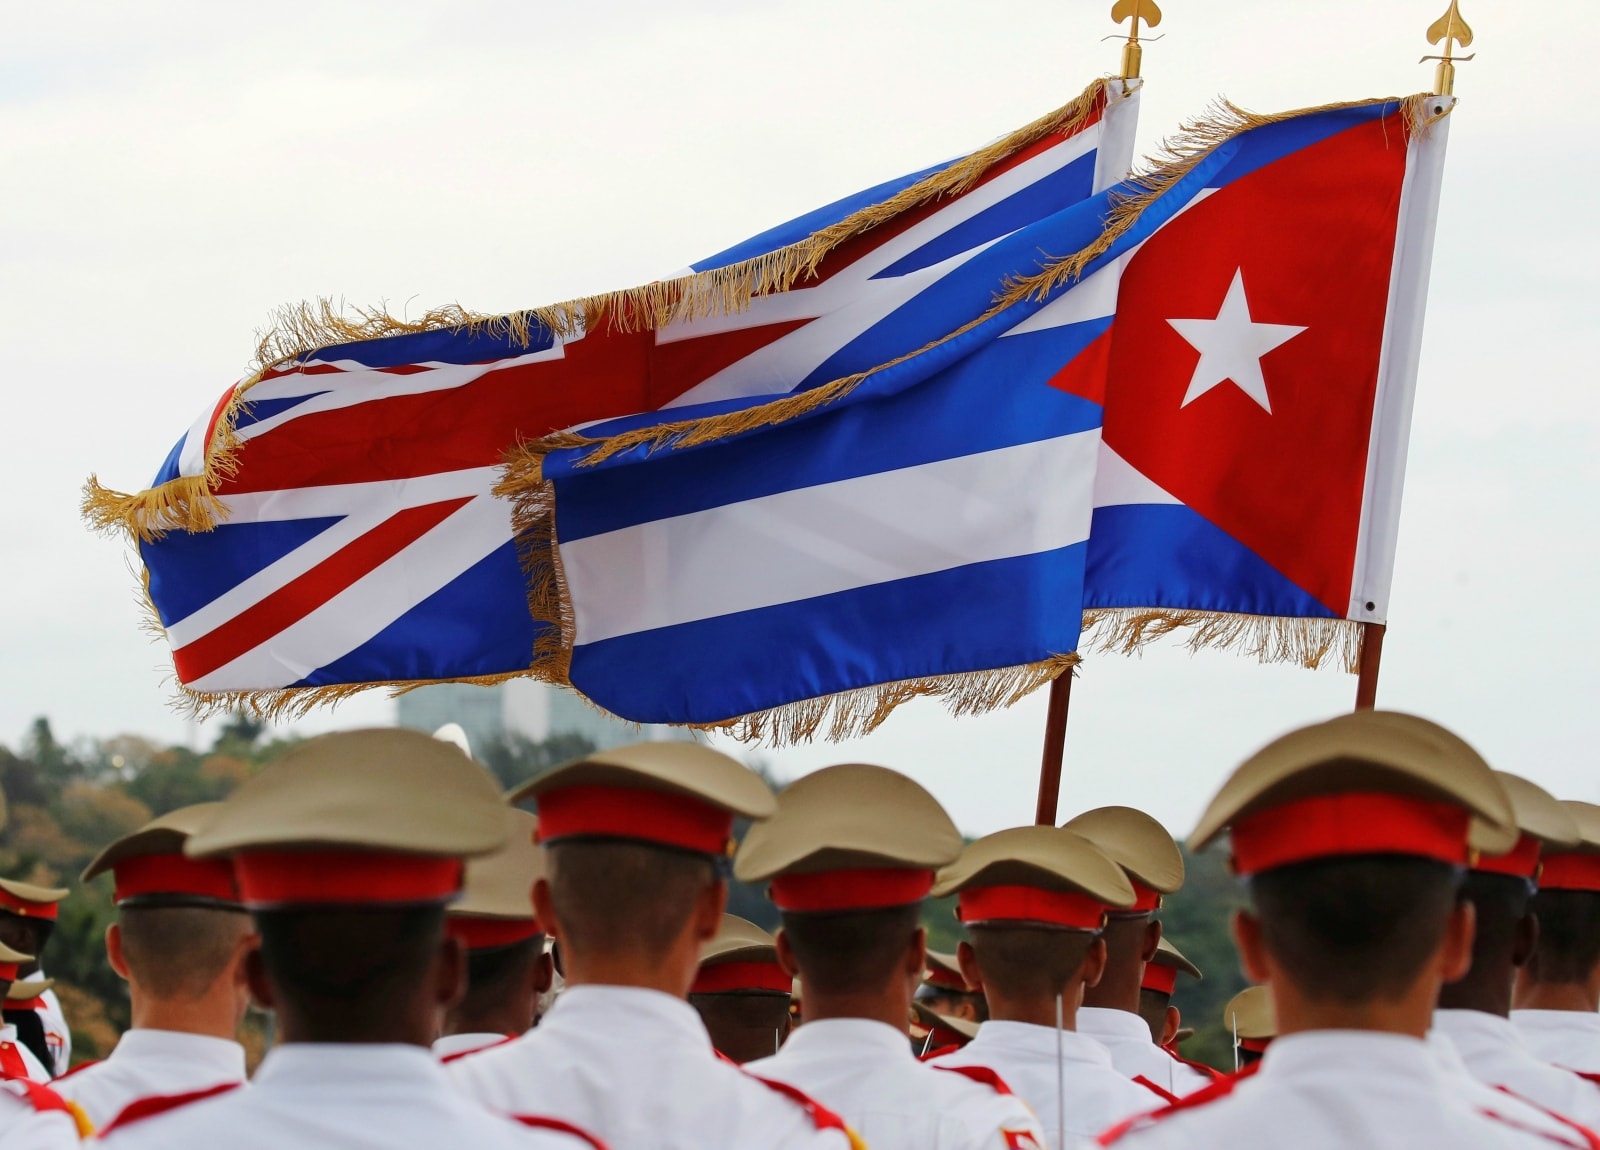 The Union Flag and Cuba's national flag flutter above a guard of honour as Britain's Prince Charles and Camilla, Duchess of Cornwall, arrive in Havana, Cuba, March 24, 2019. REUTERS/Phil Noble